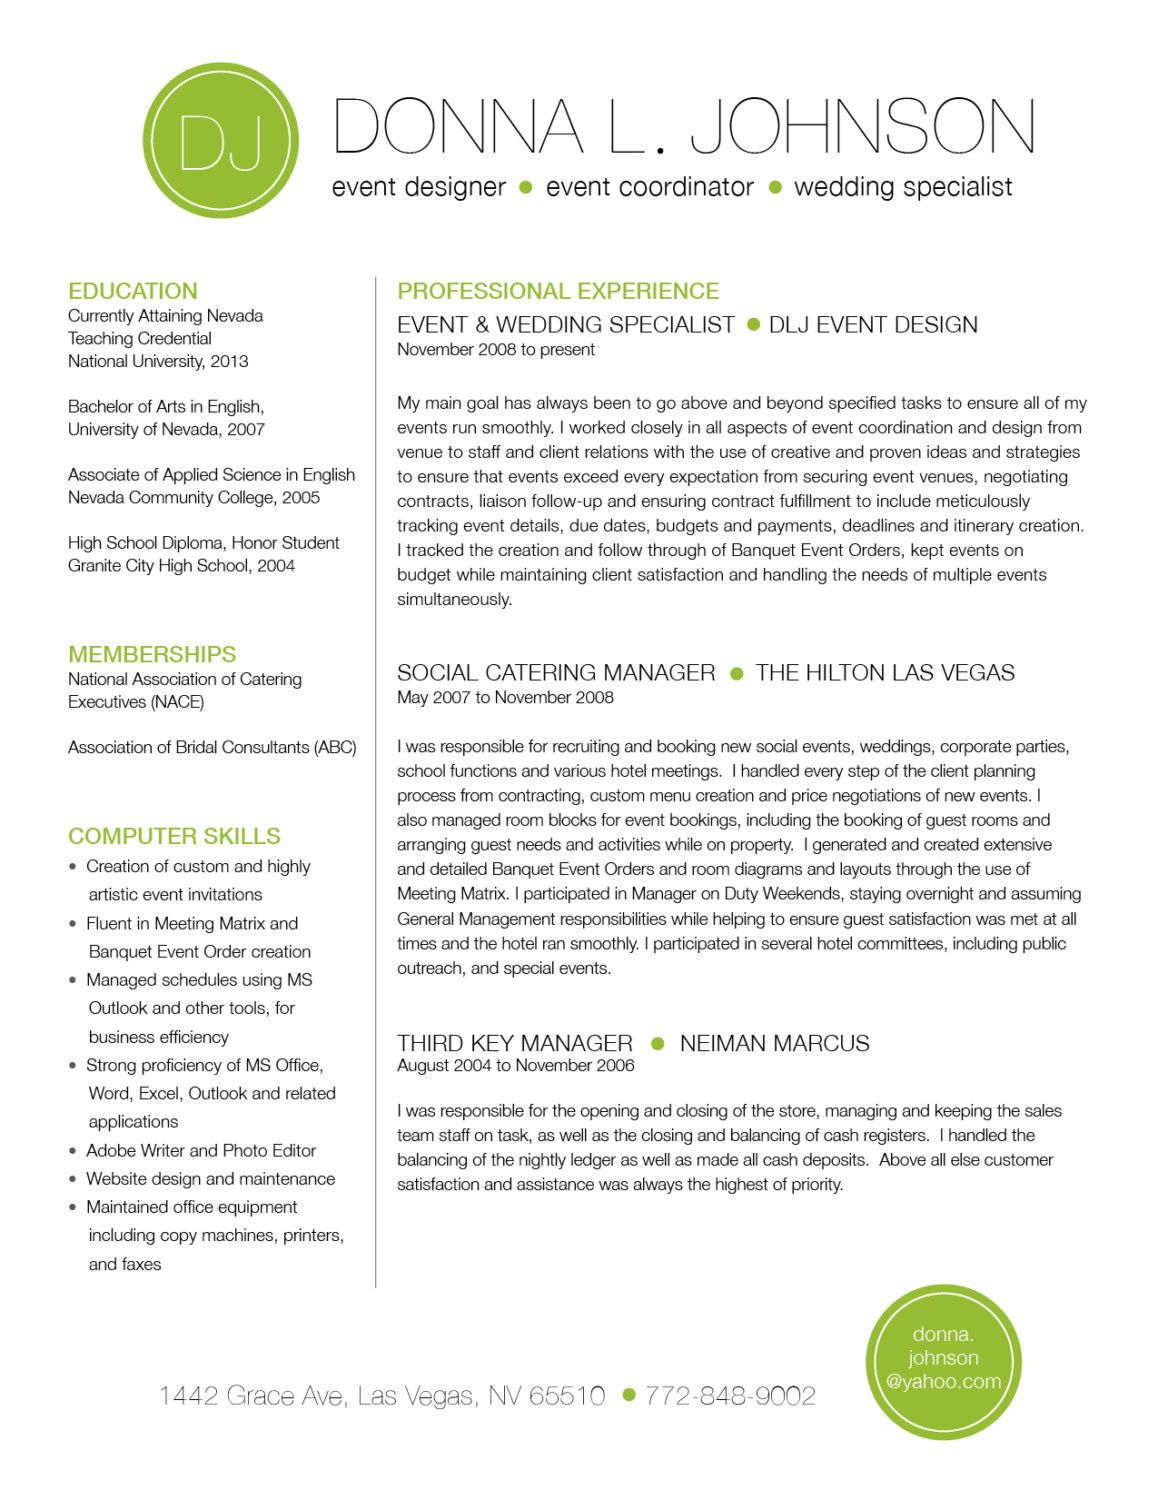 Custom two-page resume template - Color circle initials | DIY ...